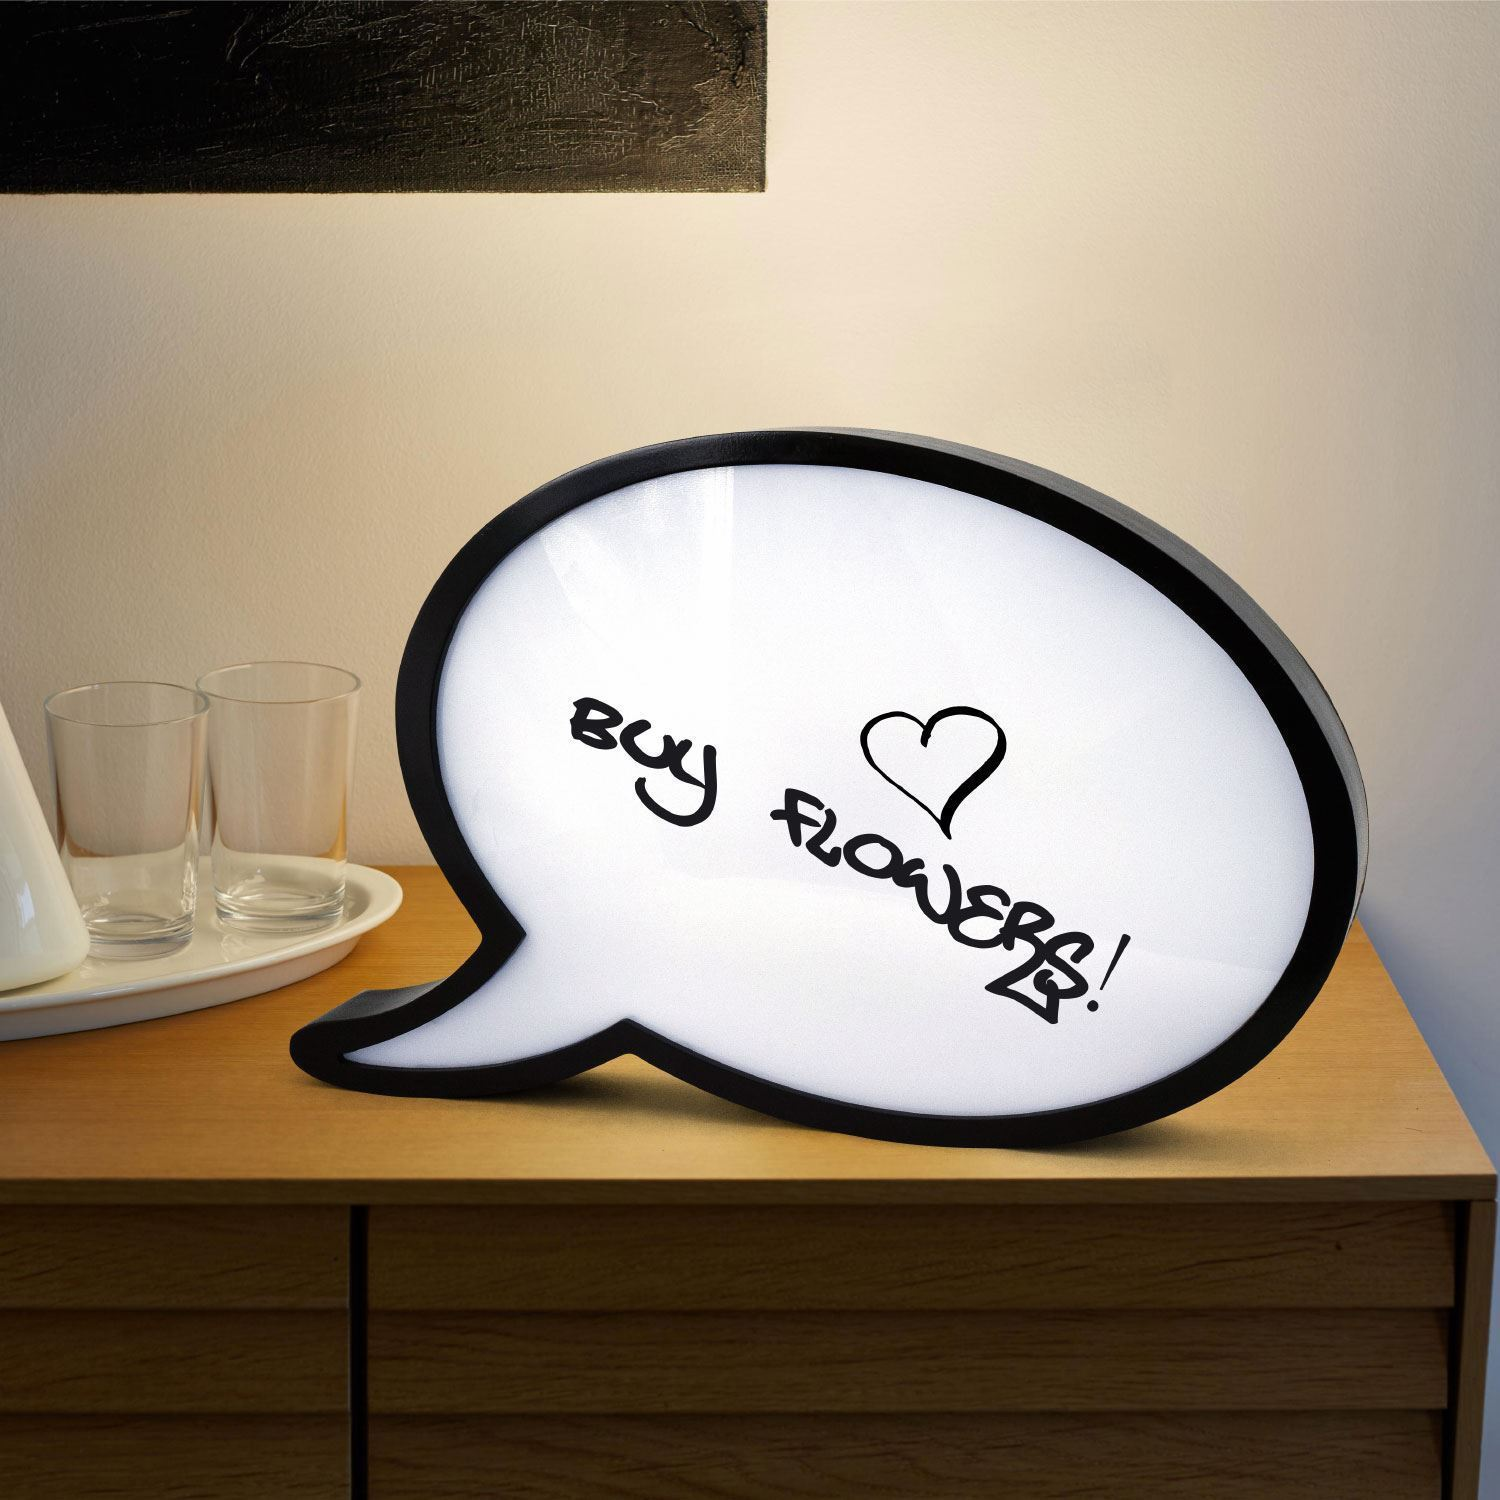 Large Speech Bubble LED Light Up Box Write Your Own Message Sign Display Party